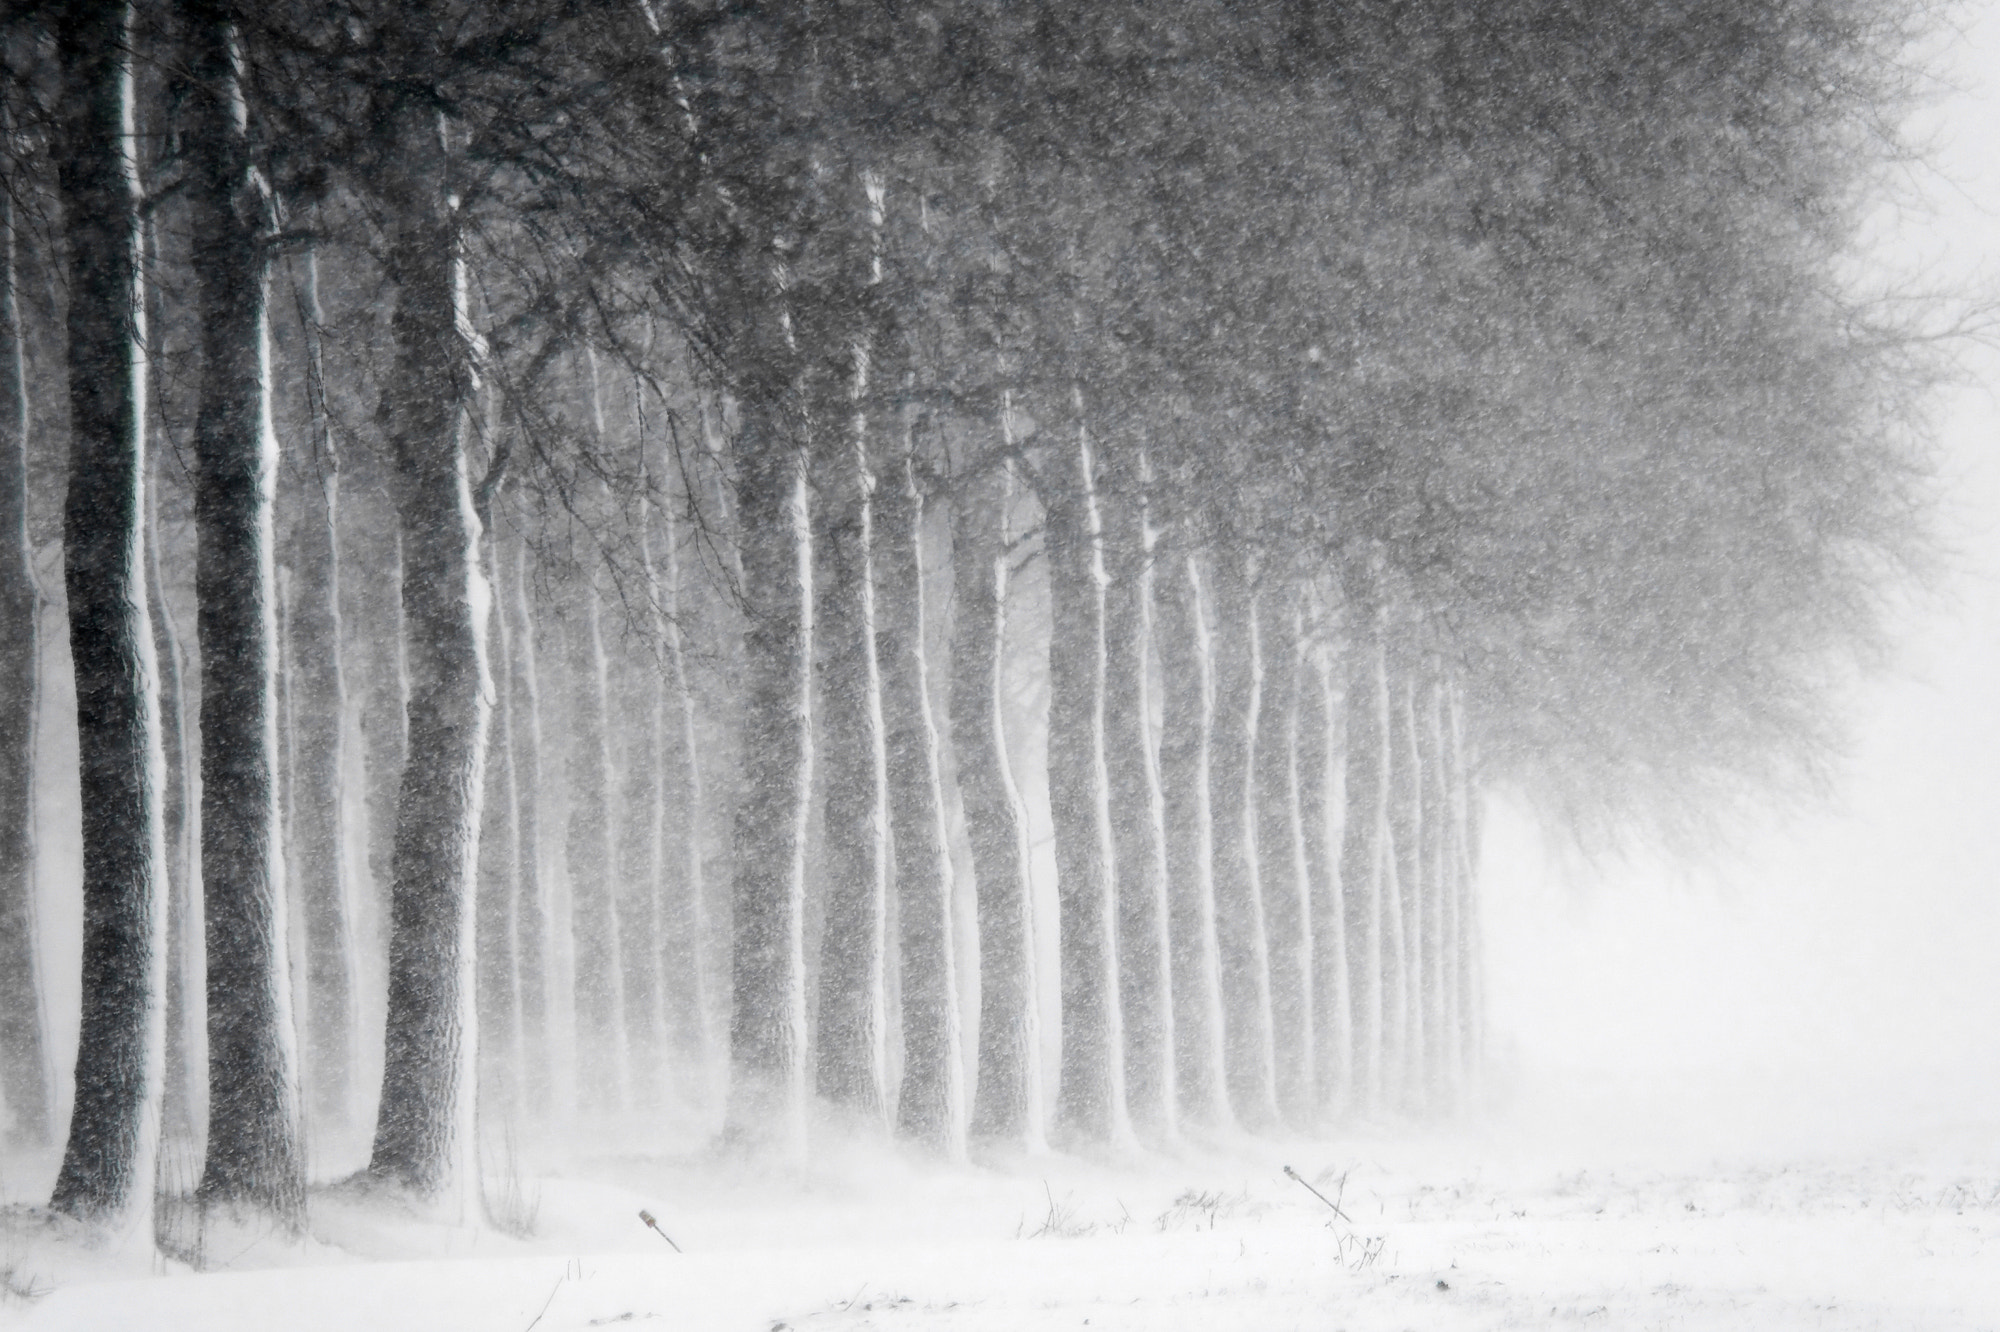 Photograph Blizzardous Sunday by Daniel Bosma on 500px